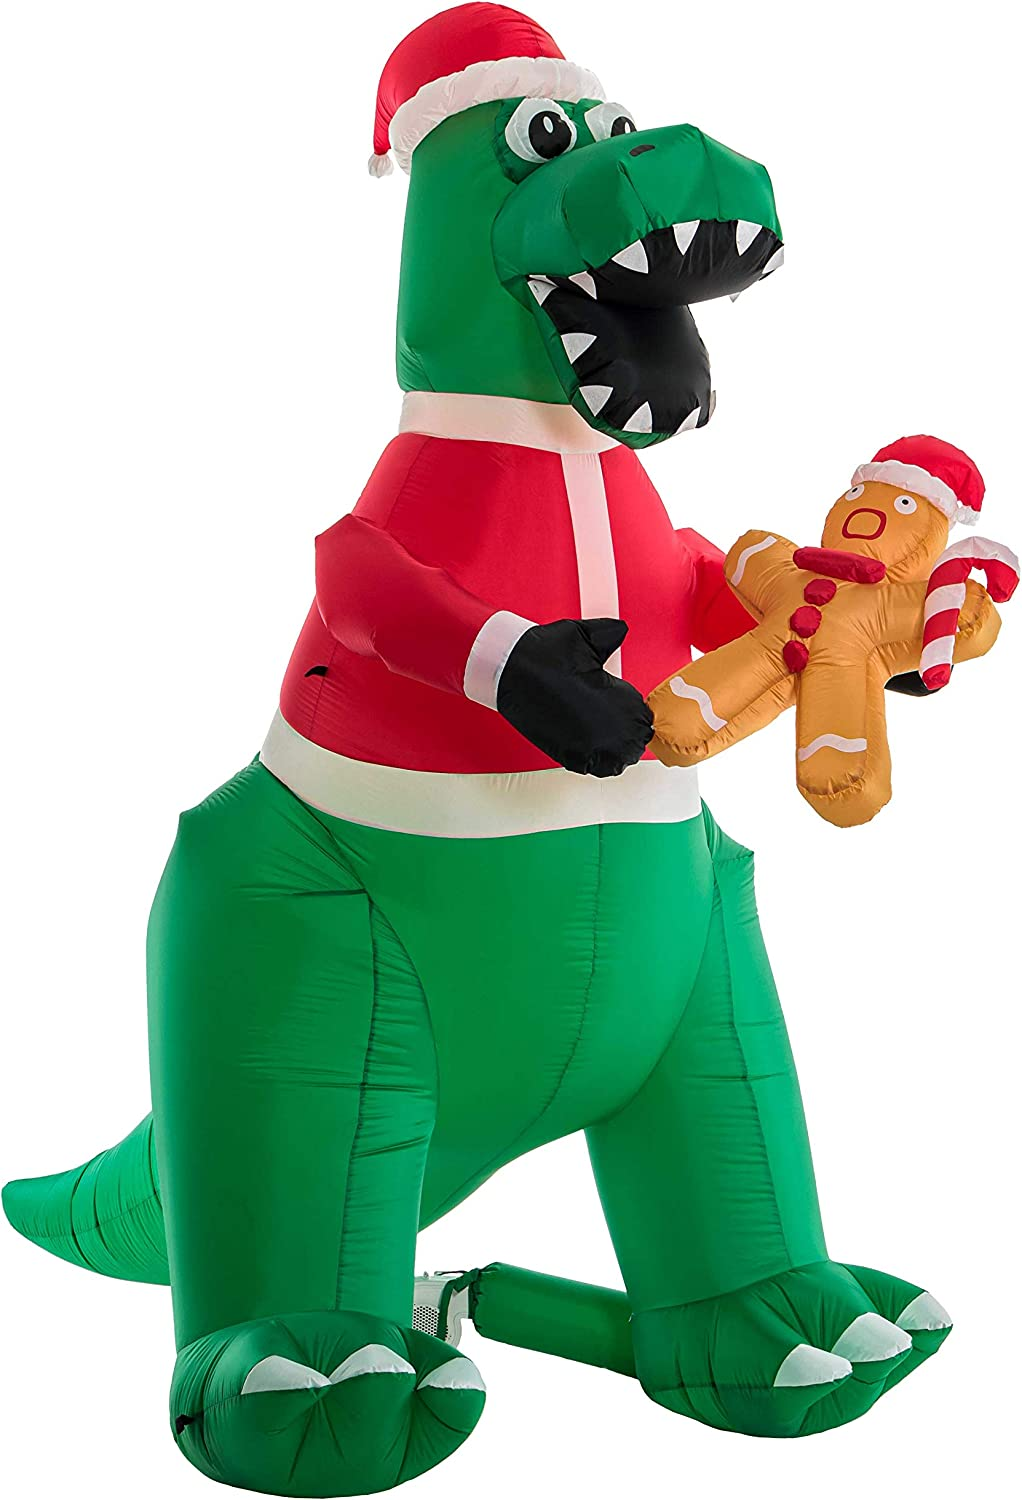 Christmas Masters 8 Foot High 7 Feet Long Inflatable T-Rex Dinosaur with Santa Hat Eating Gingerbread Man Cookie LED Lights Indoor Outdoor Yard Lawn Decoration - Fun Tyrannosaurus Xmas Holiday Blow Up